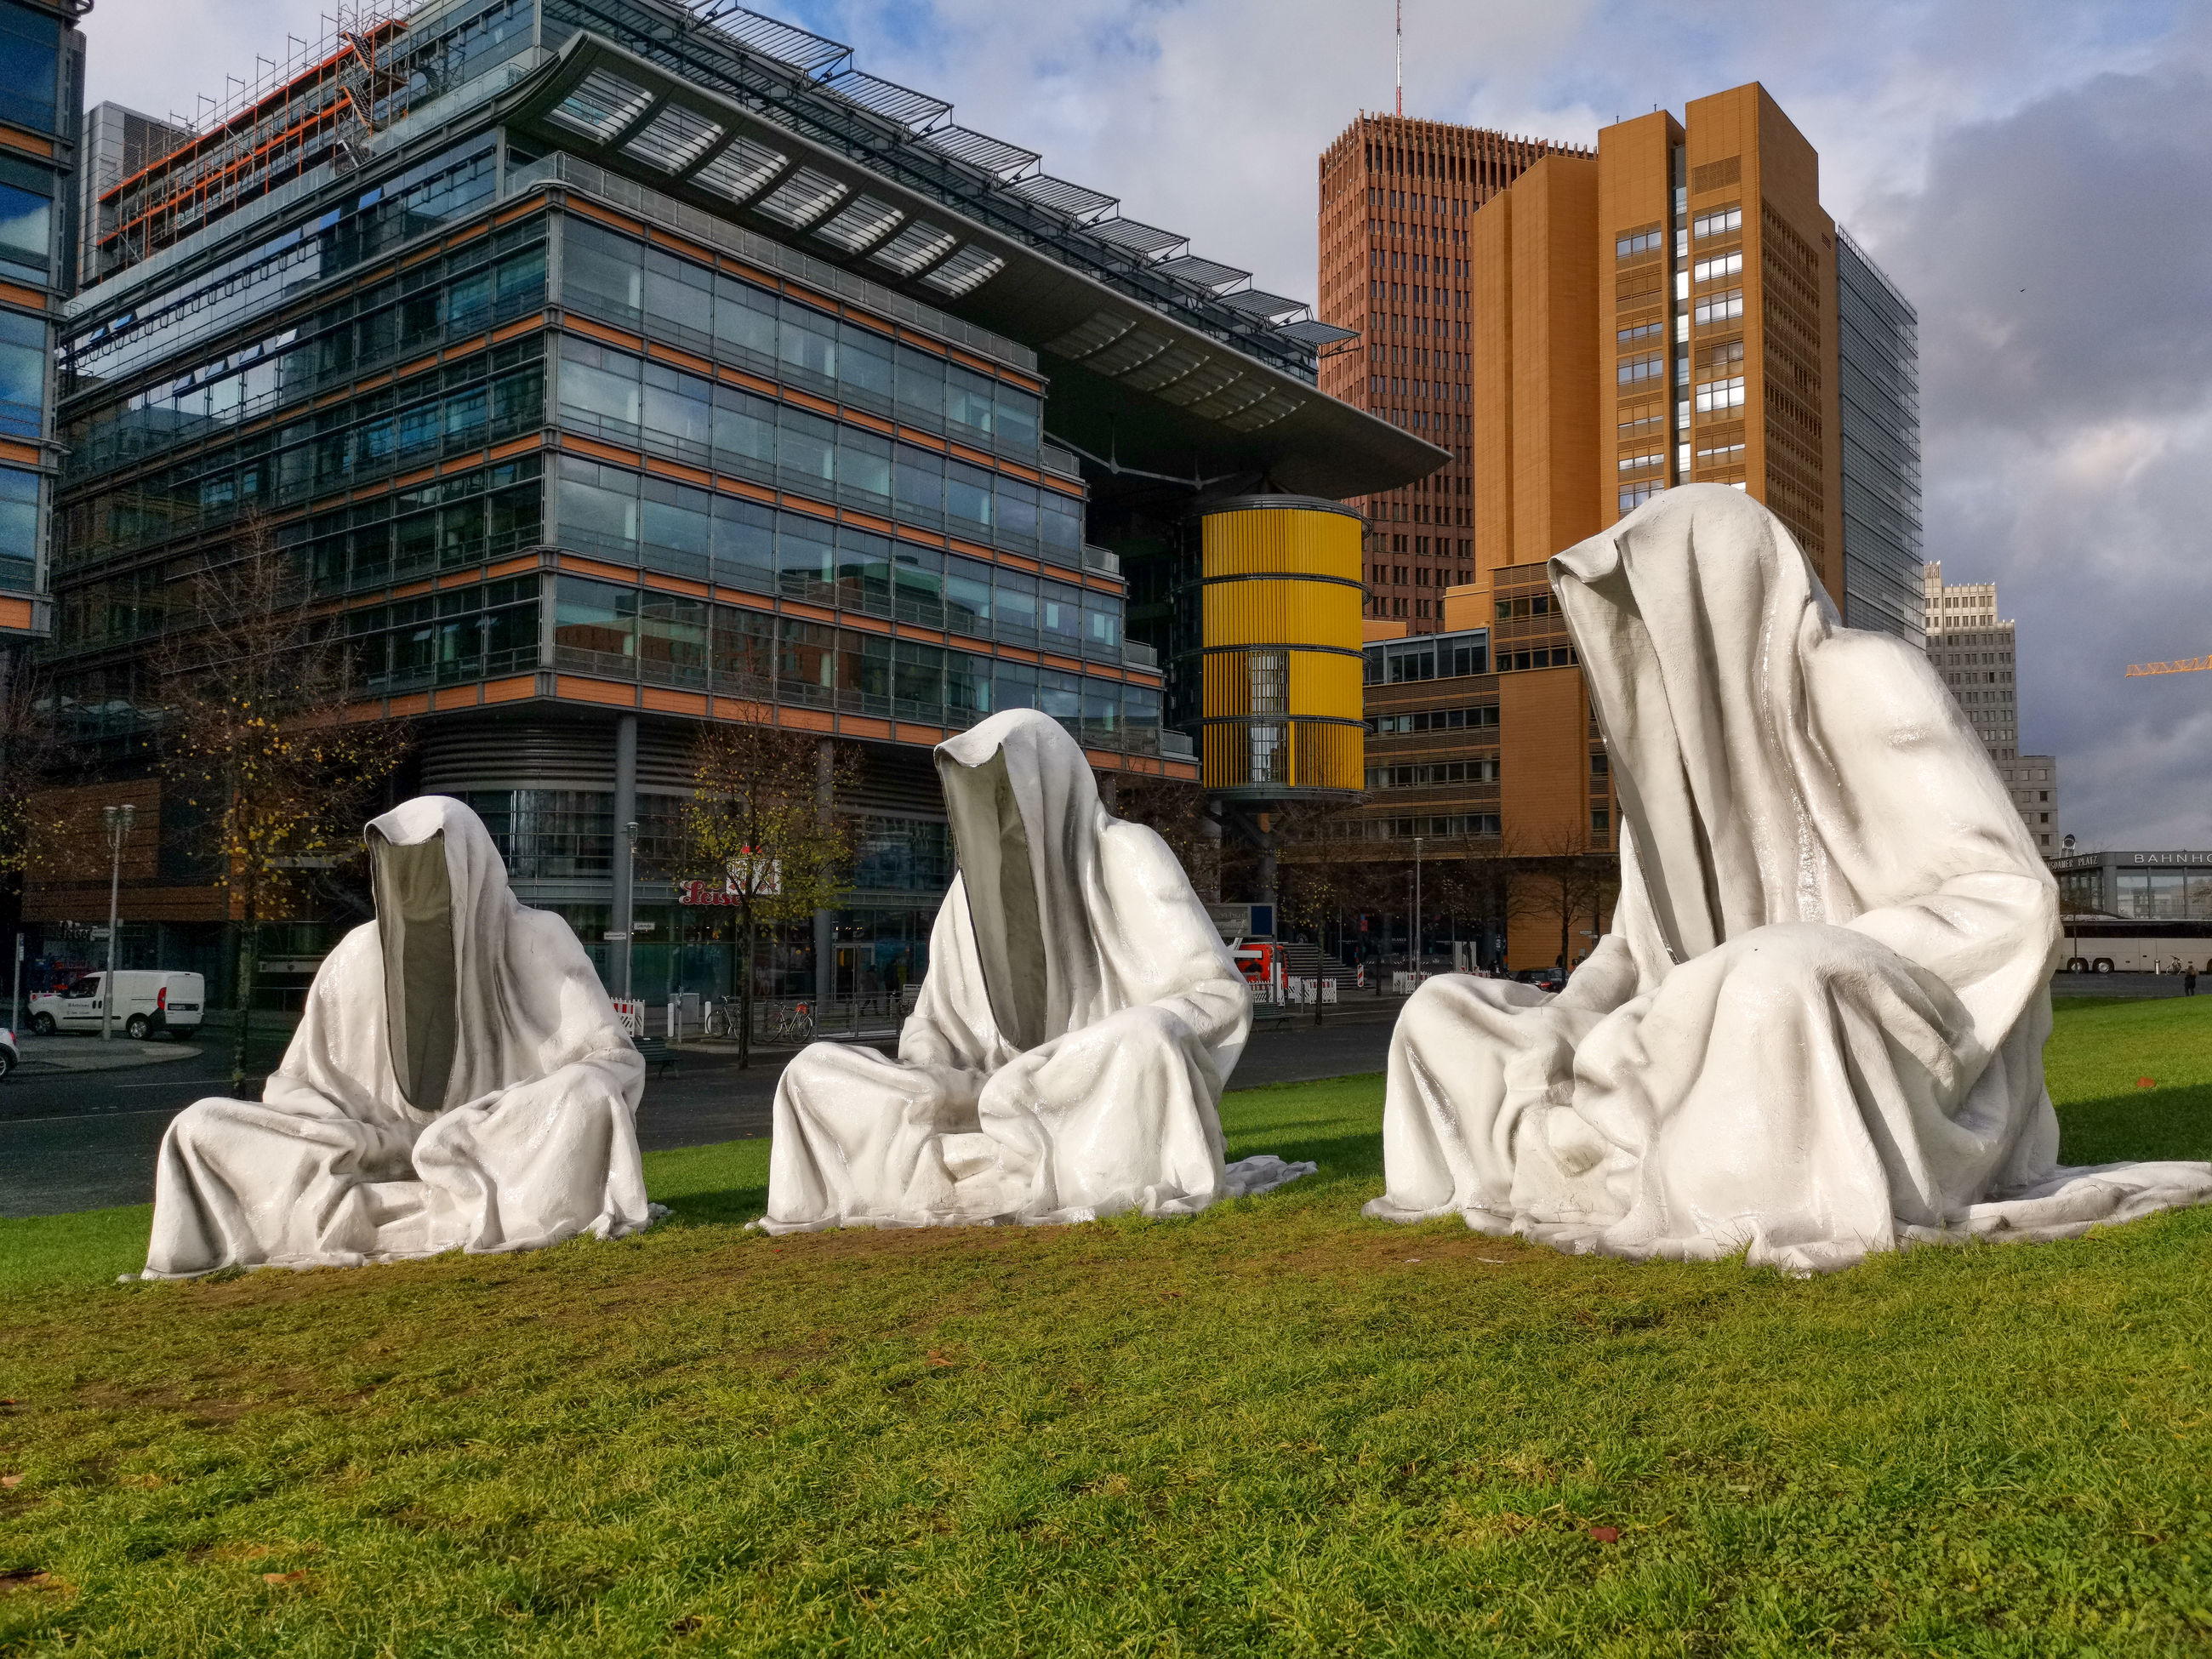 WHITE SCULPTURE ON FIELD BY BUILDINGS AGAINST SKY